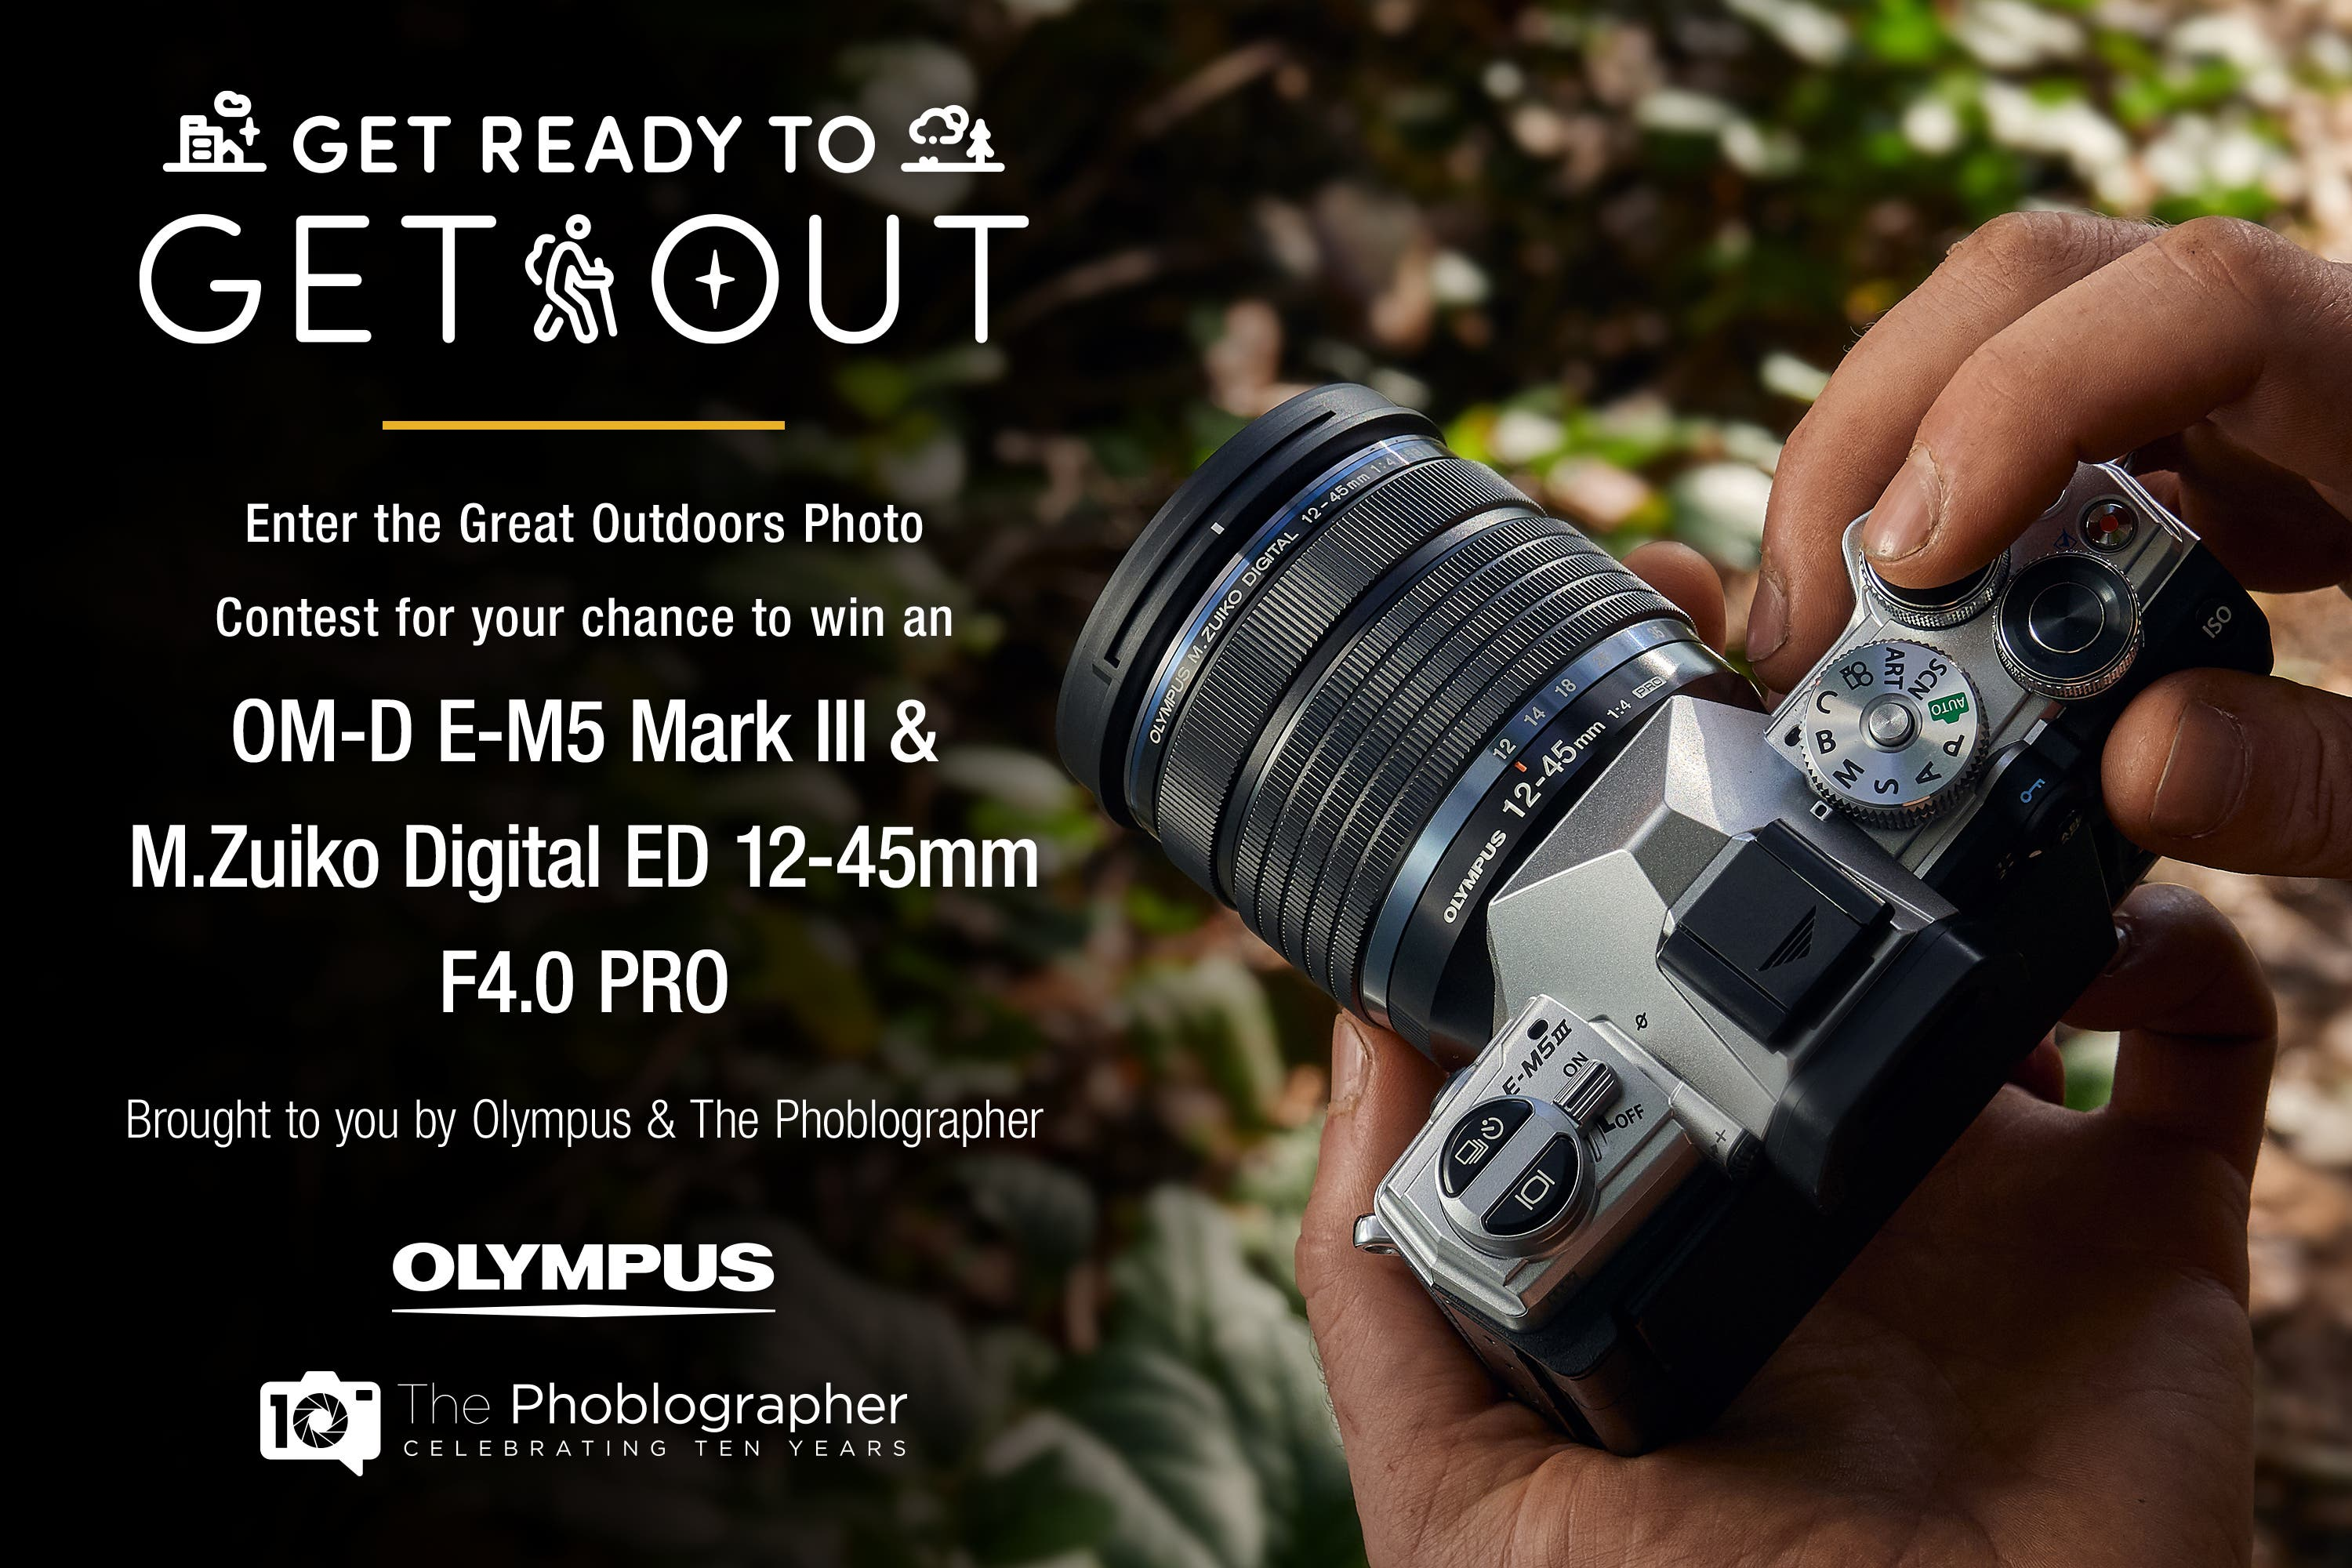 Only a Few Hours Left for the Great Outdoors Photography Contest!